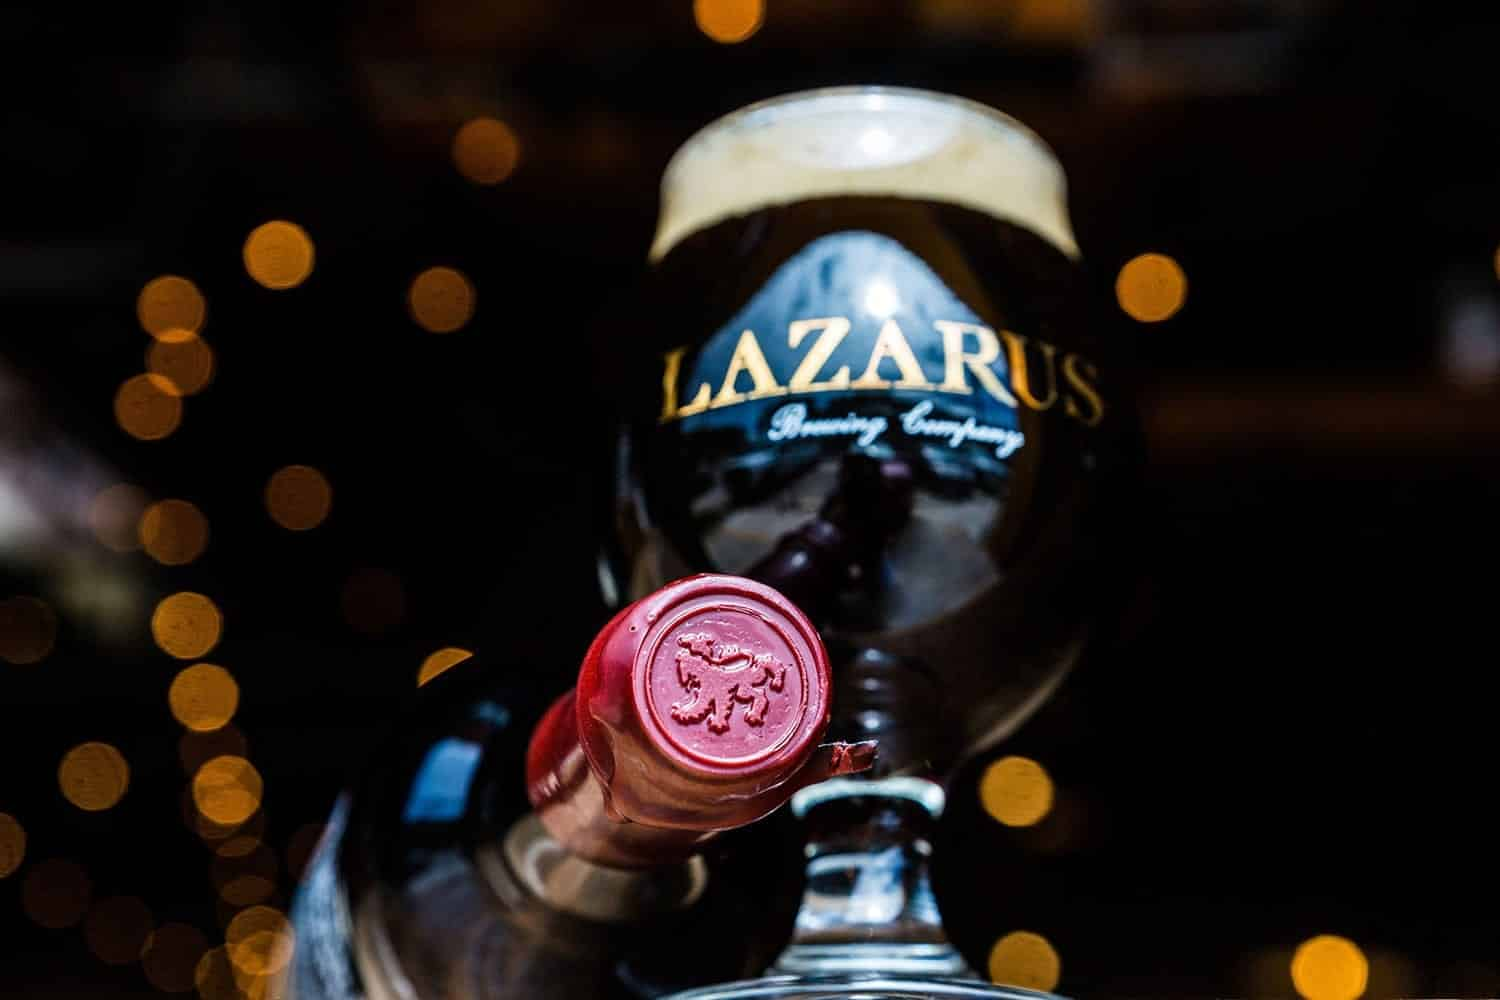 Lazarus Brewing Co.